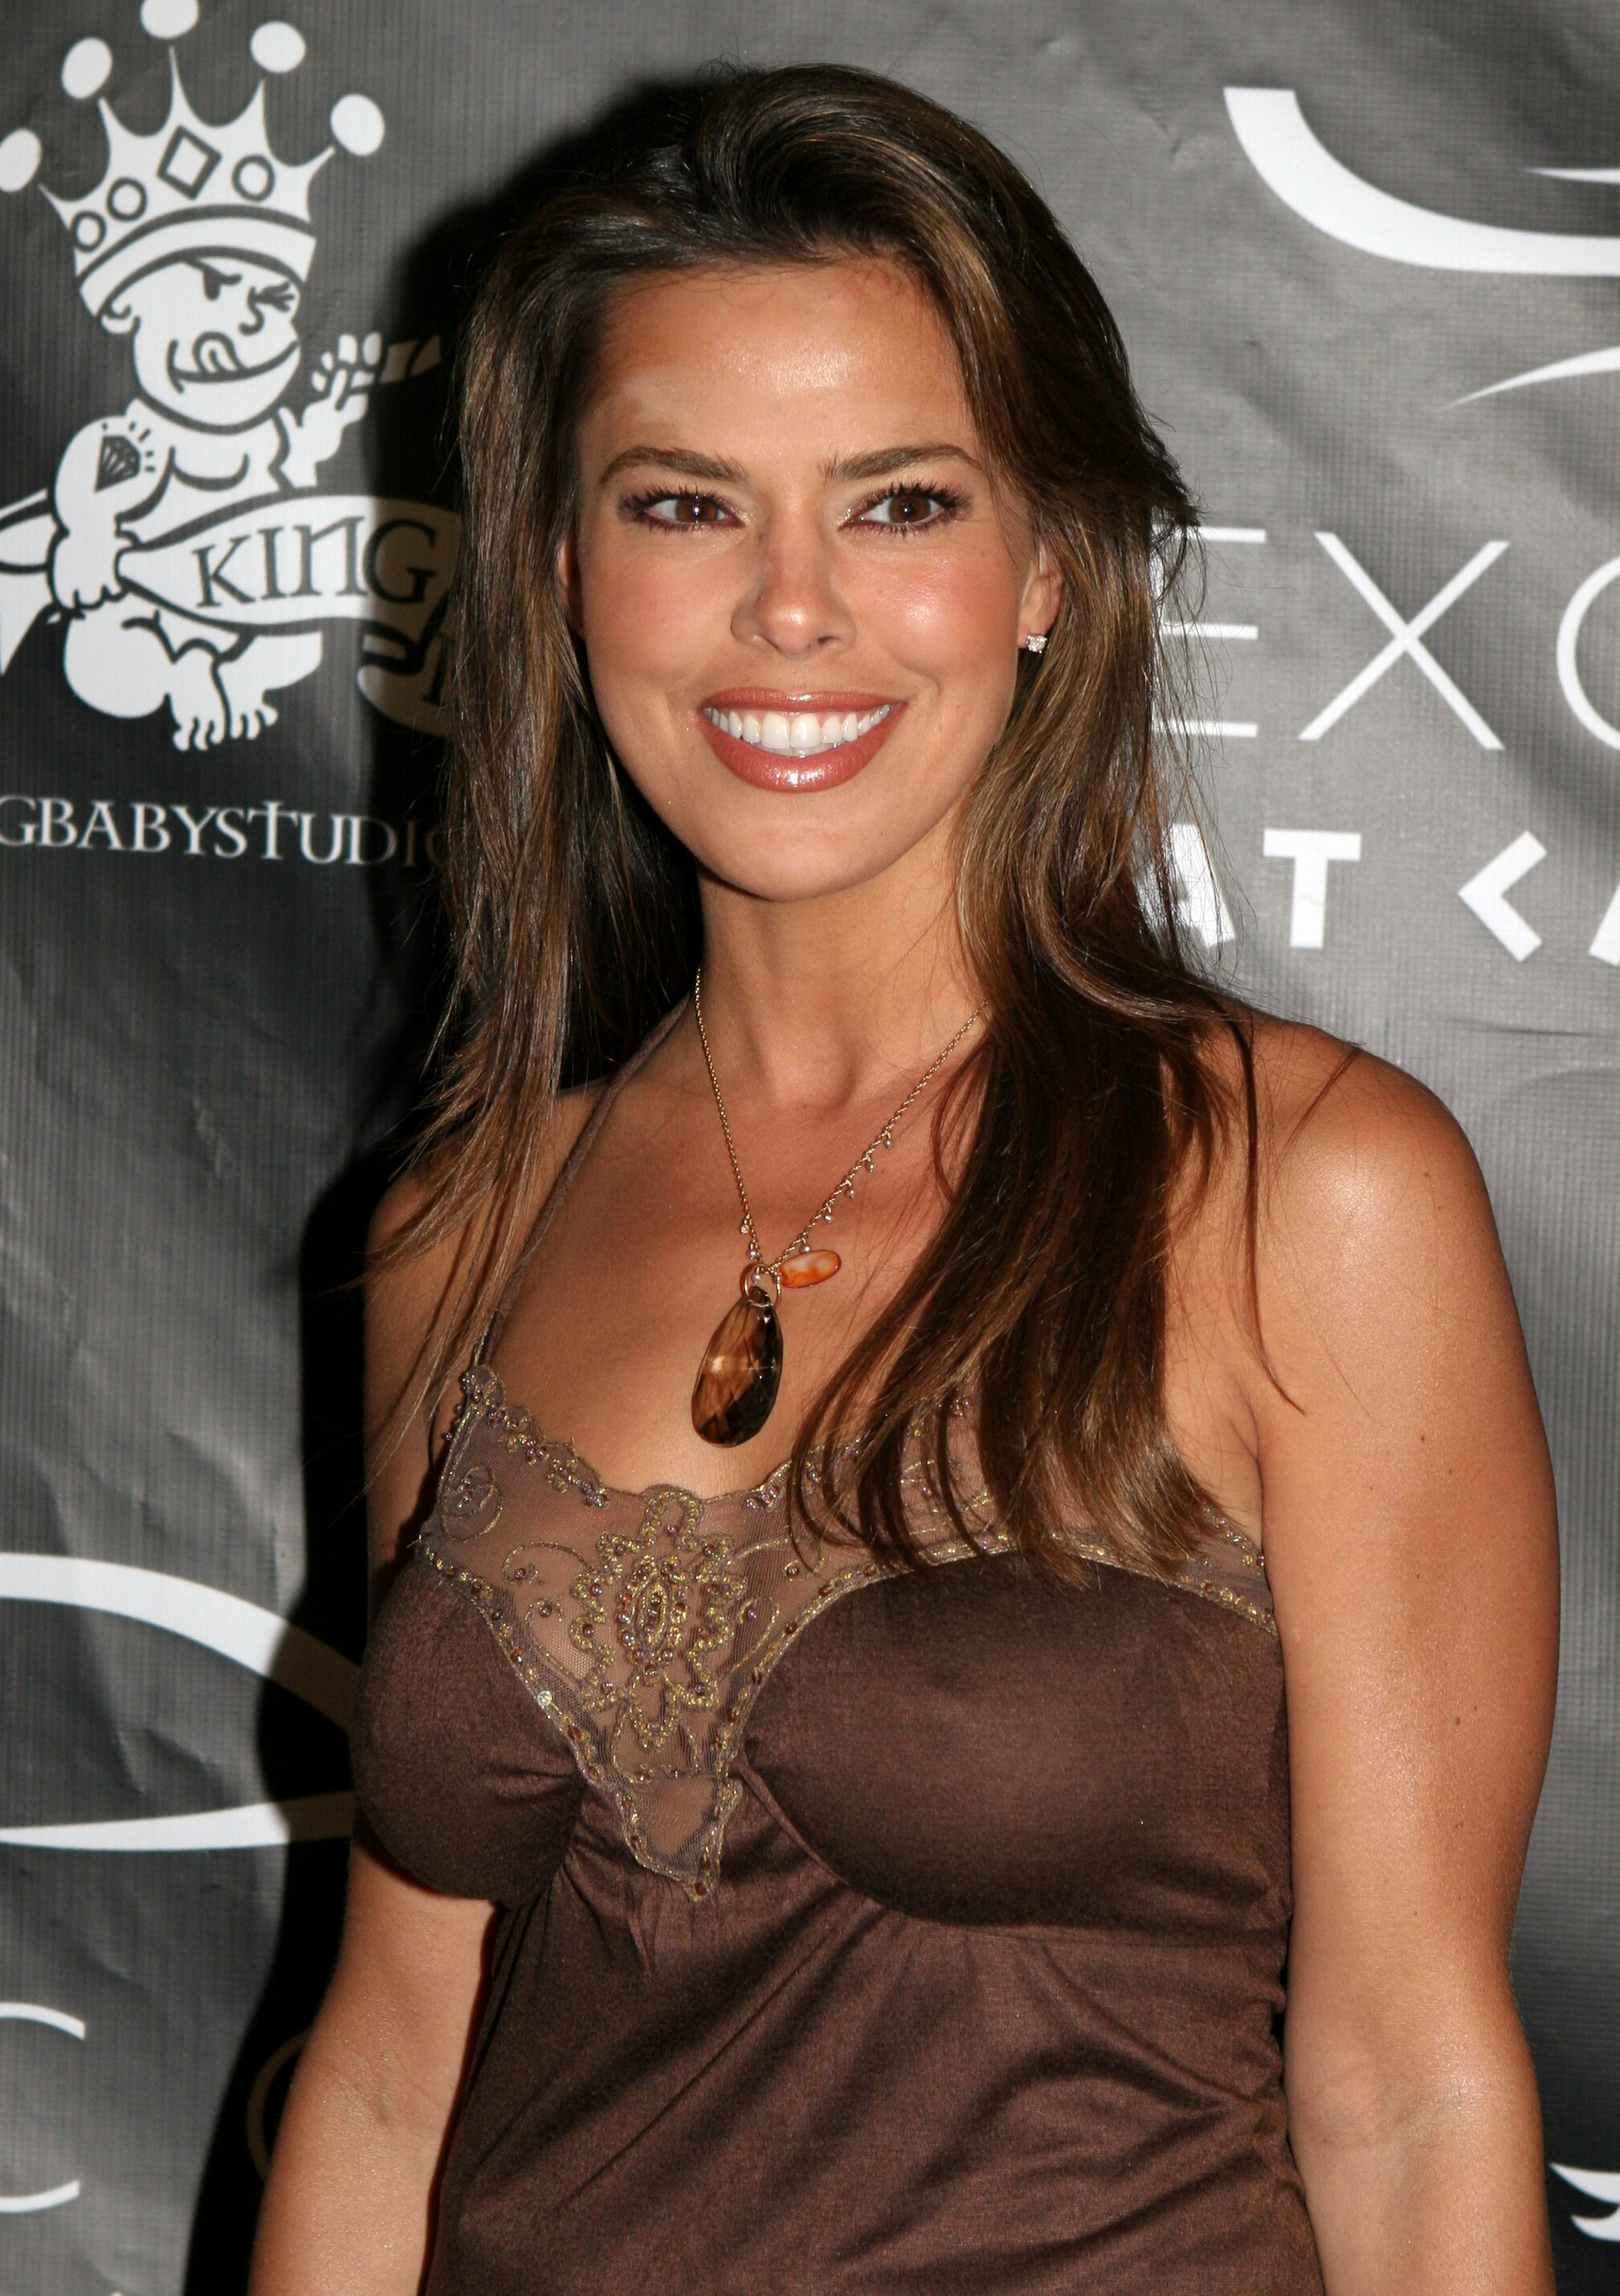 rosa blasi wikipediarosa blasi wikipedia, rosa blasi movies and tv shows, rosa blasi family, rosa blasi, rosa blasi instagram, rosa blasi thundermans, rosa blasi wiki, rosa blasi facebook, rosa blasi twitter, rosa blasi pictures